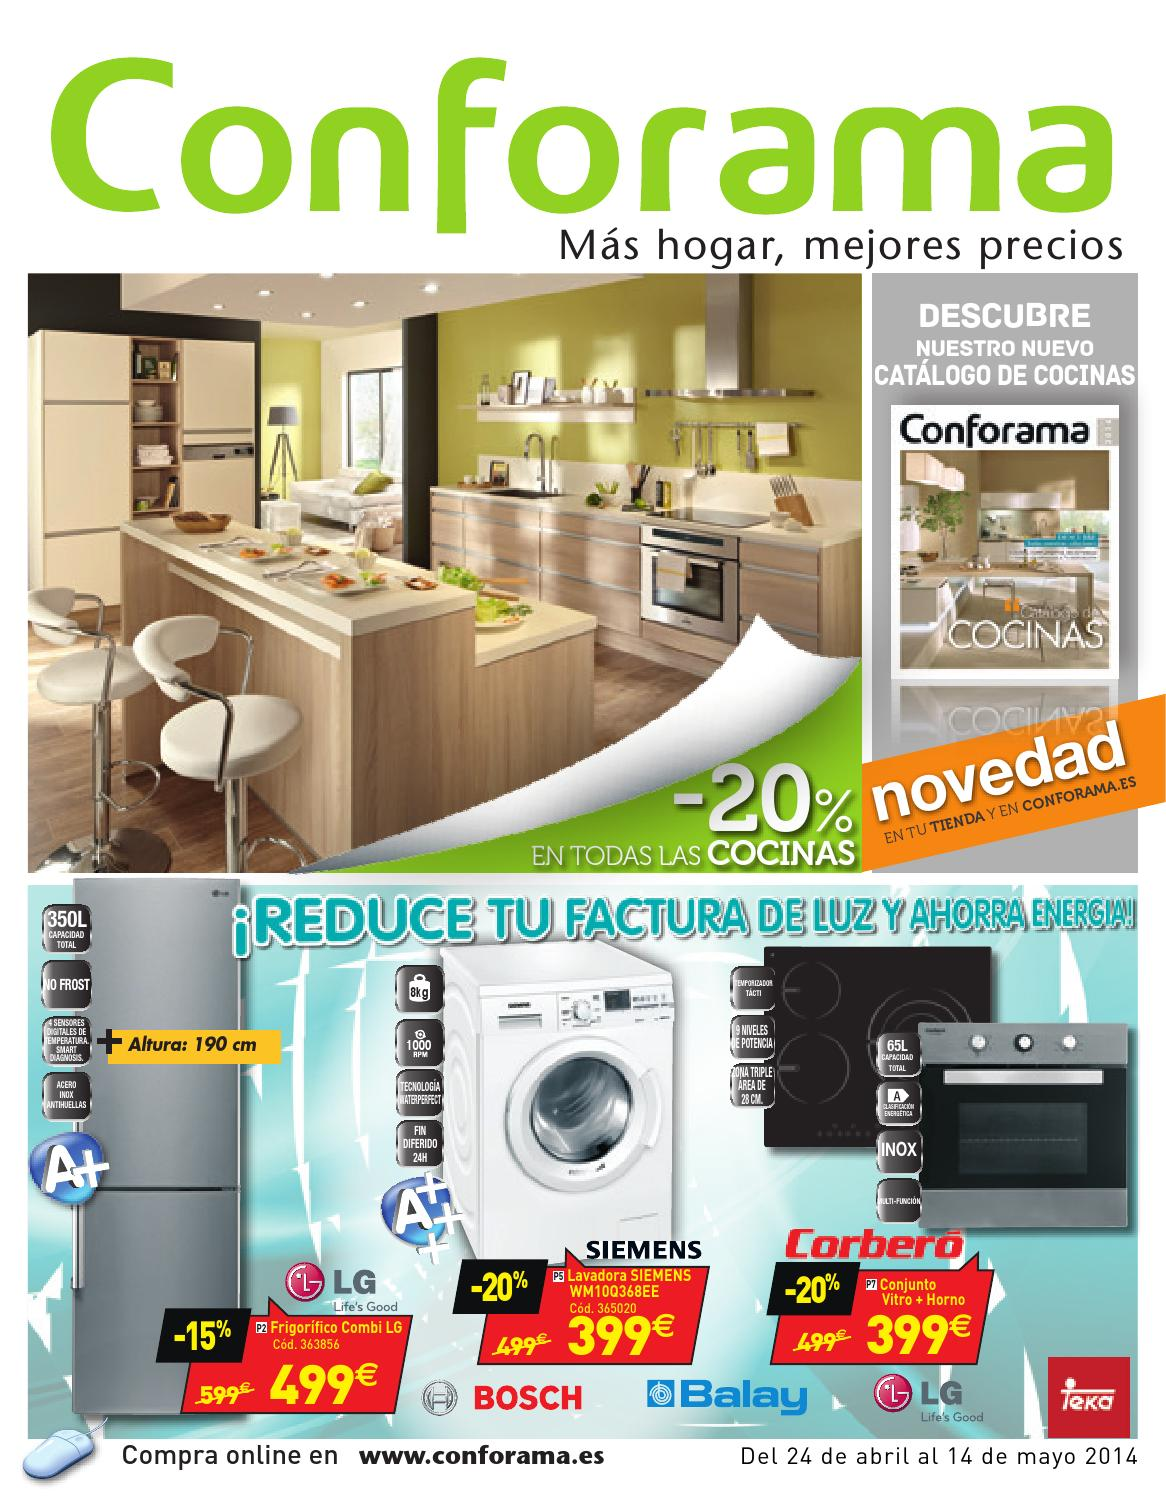 Conforama catalogo 24abril 14mayo2014 by - Conforama sevilla catalogo ...